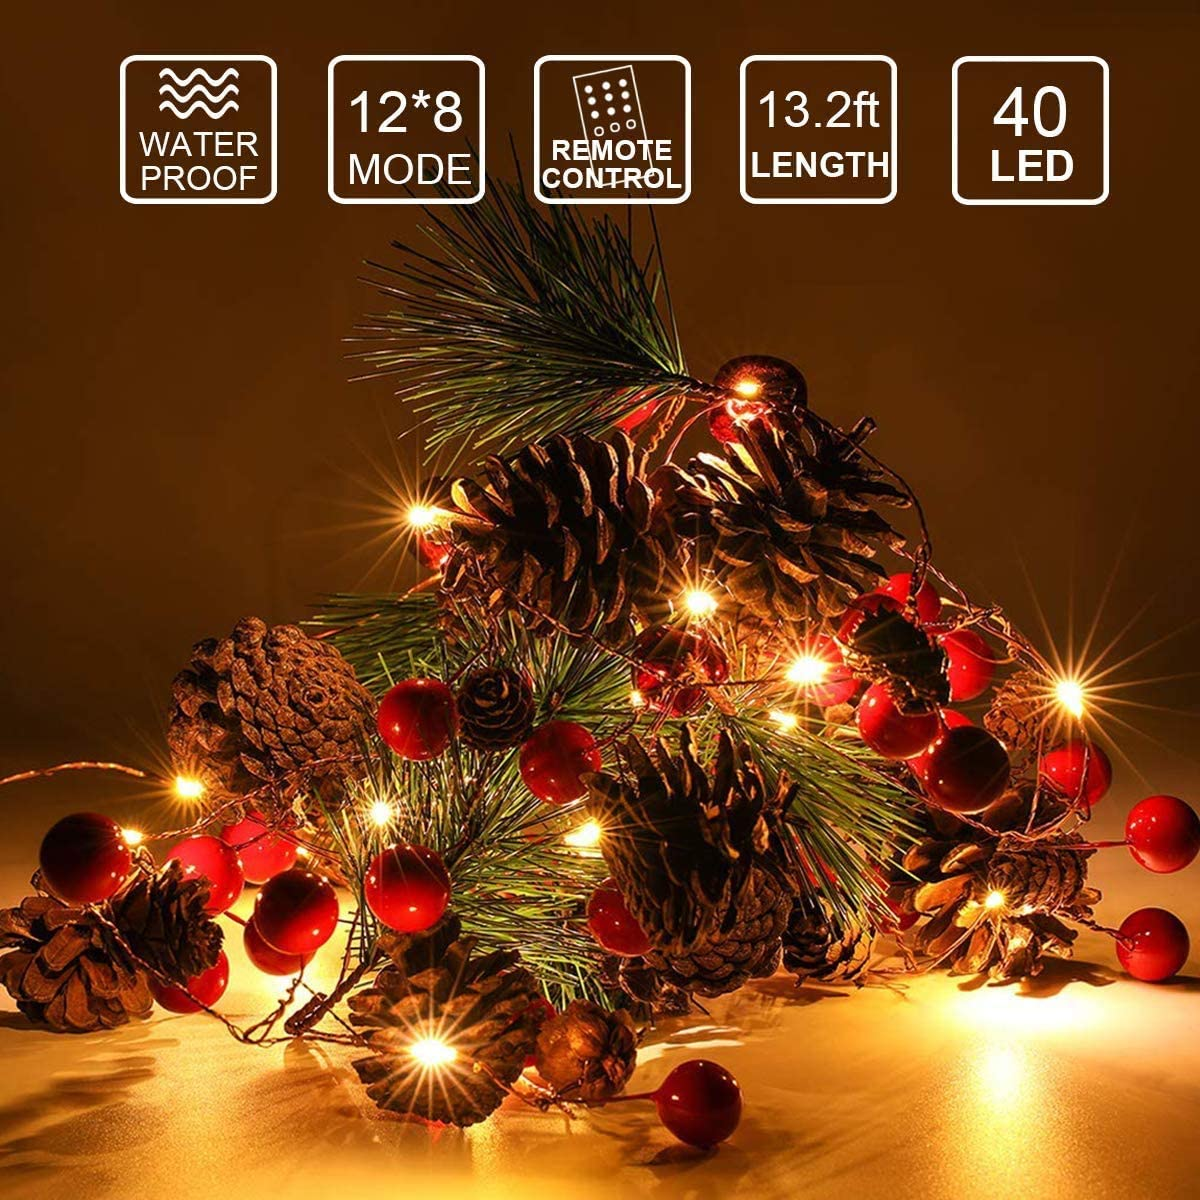 Christmas Decorations for Indoor or Outdoor Nature Pine Cones with Red Berry Led Garland Lights Strip with Remote Control and Waterproof Battery Box ON2NO 10FT 40LED Christmas Garland with Lights